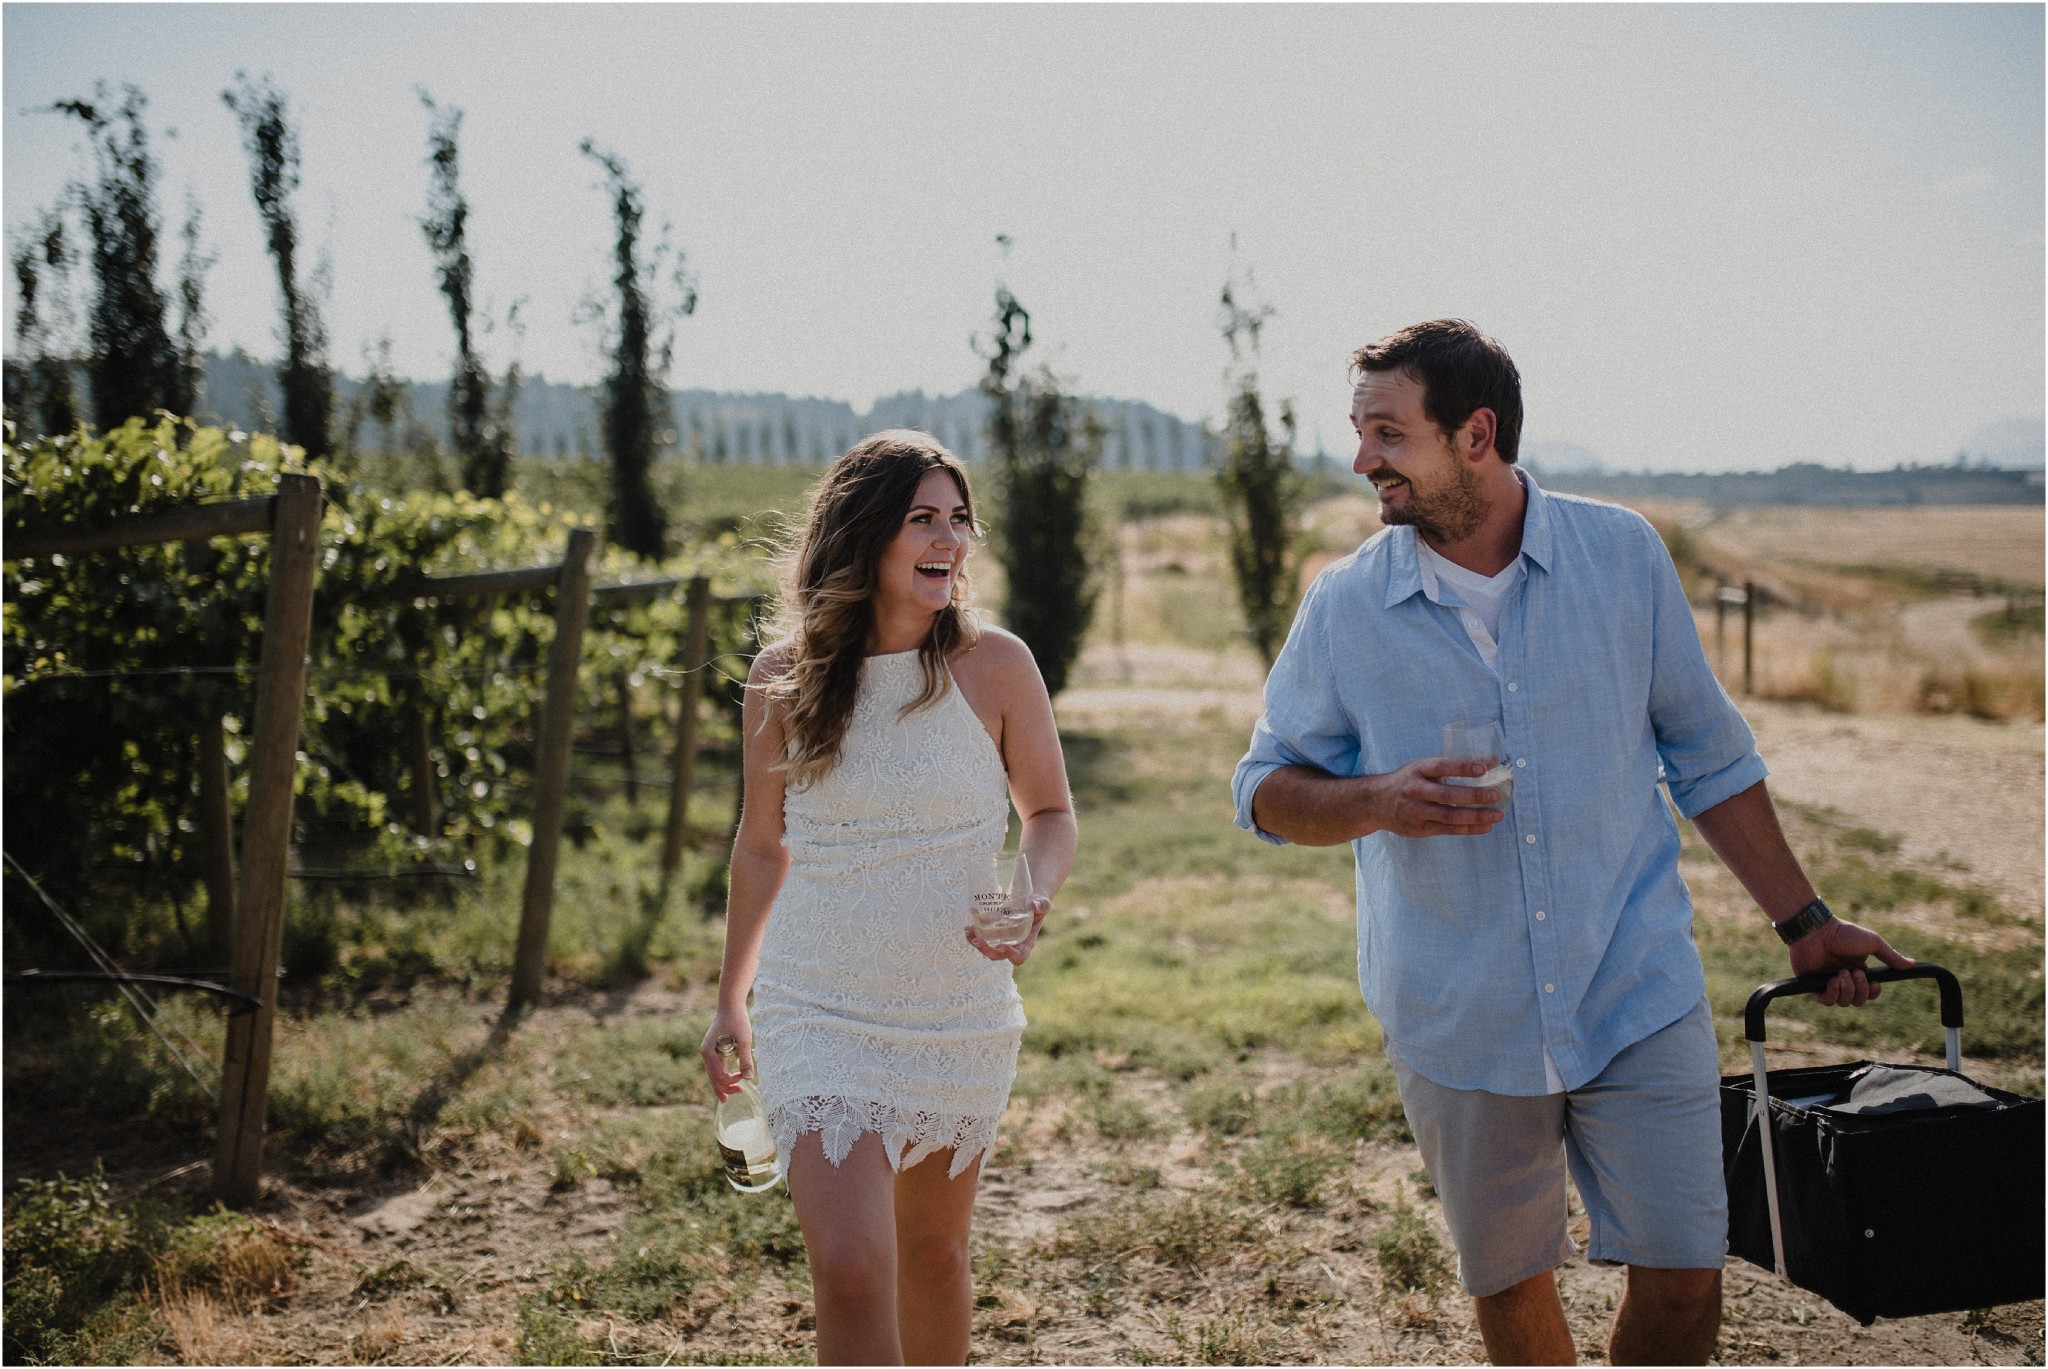 Monte Creek Ranch Winery Engagement